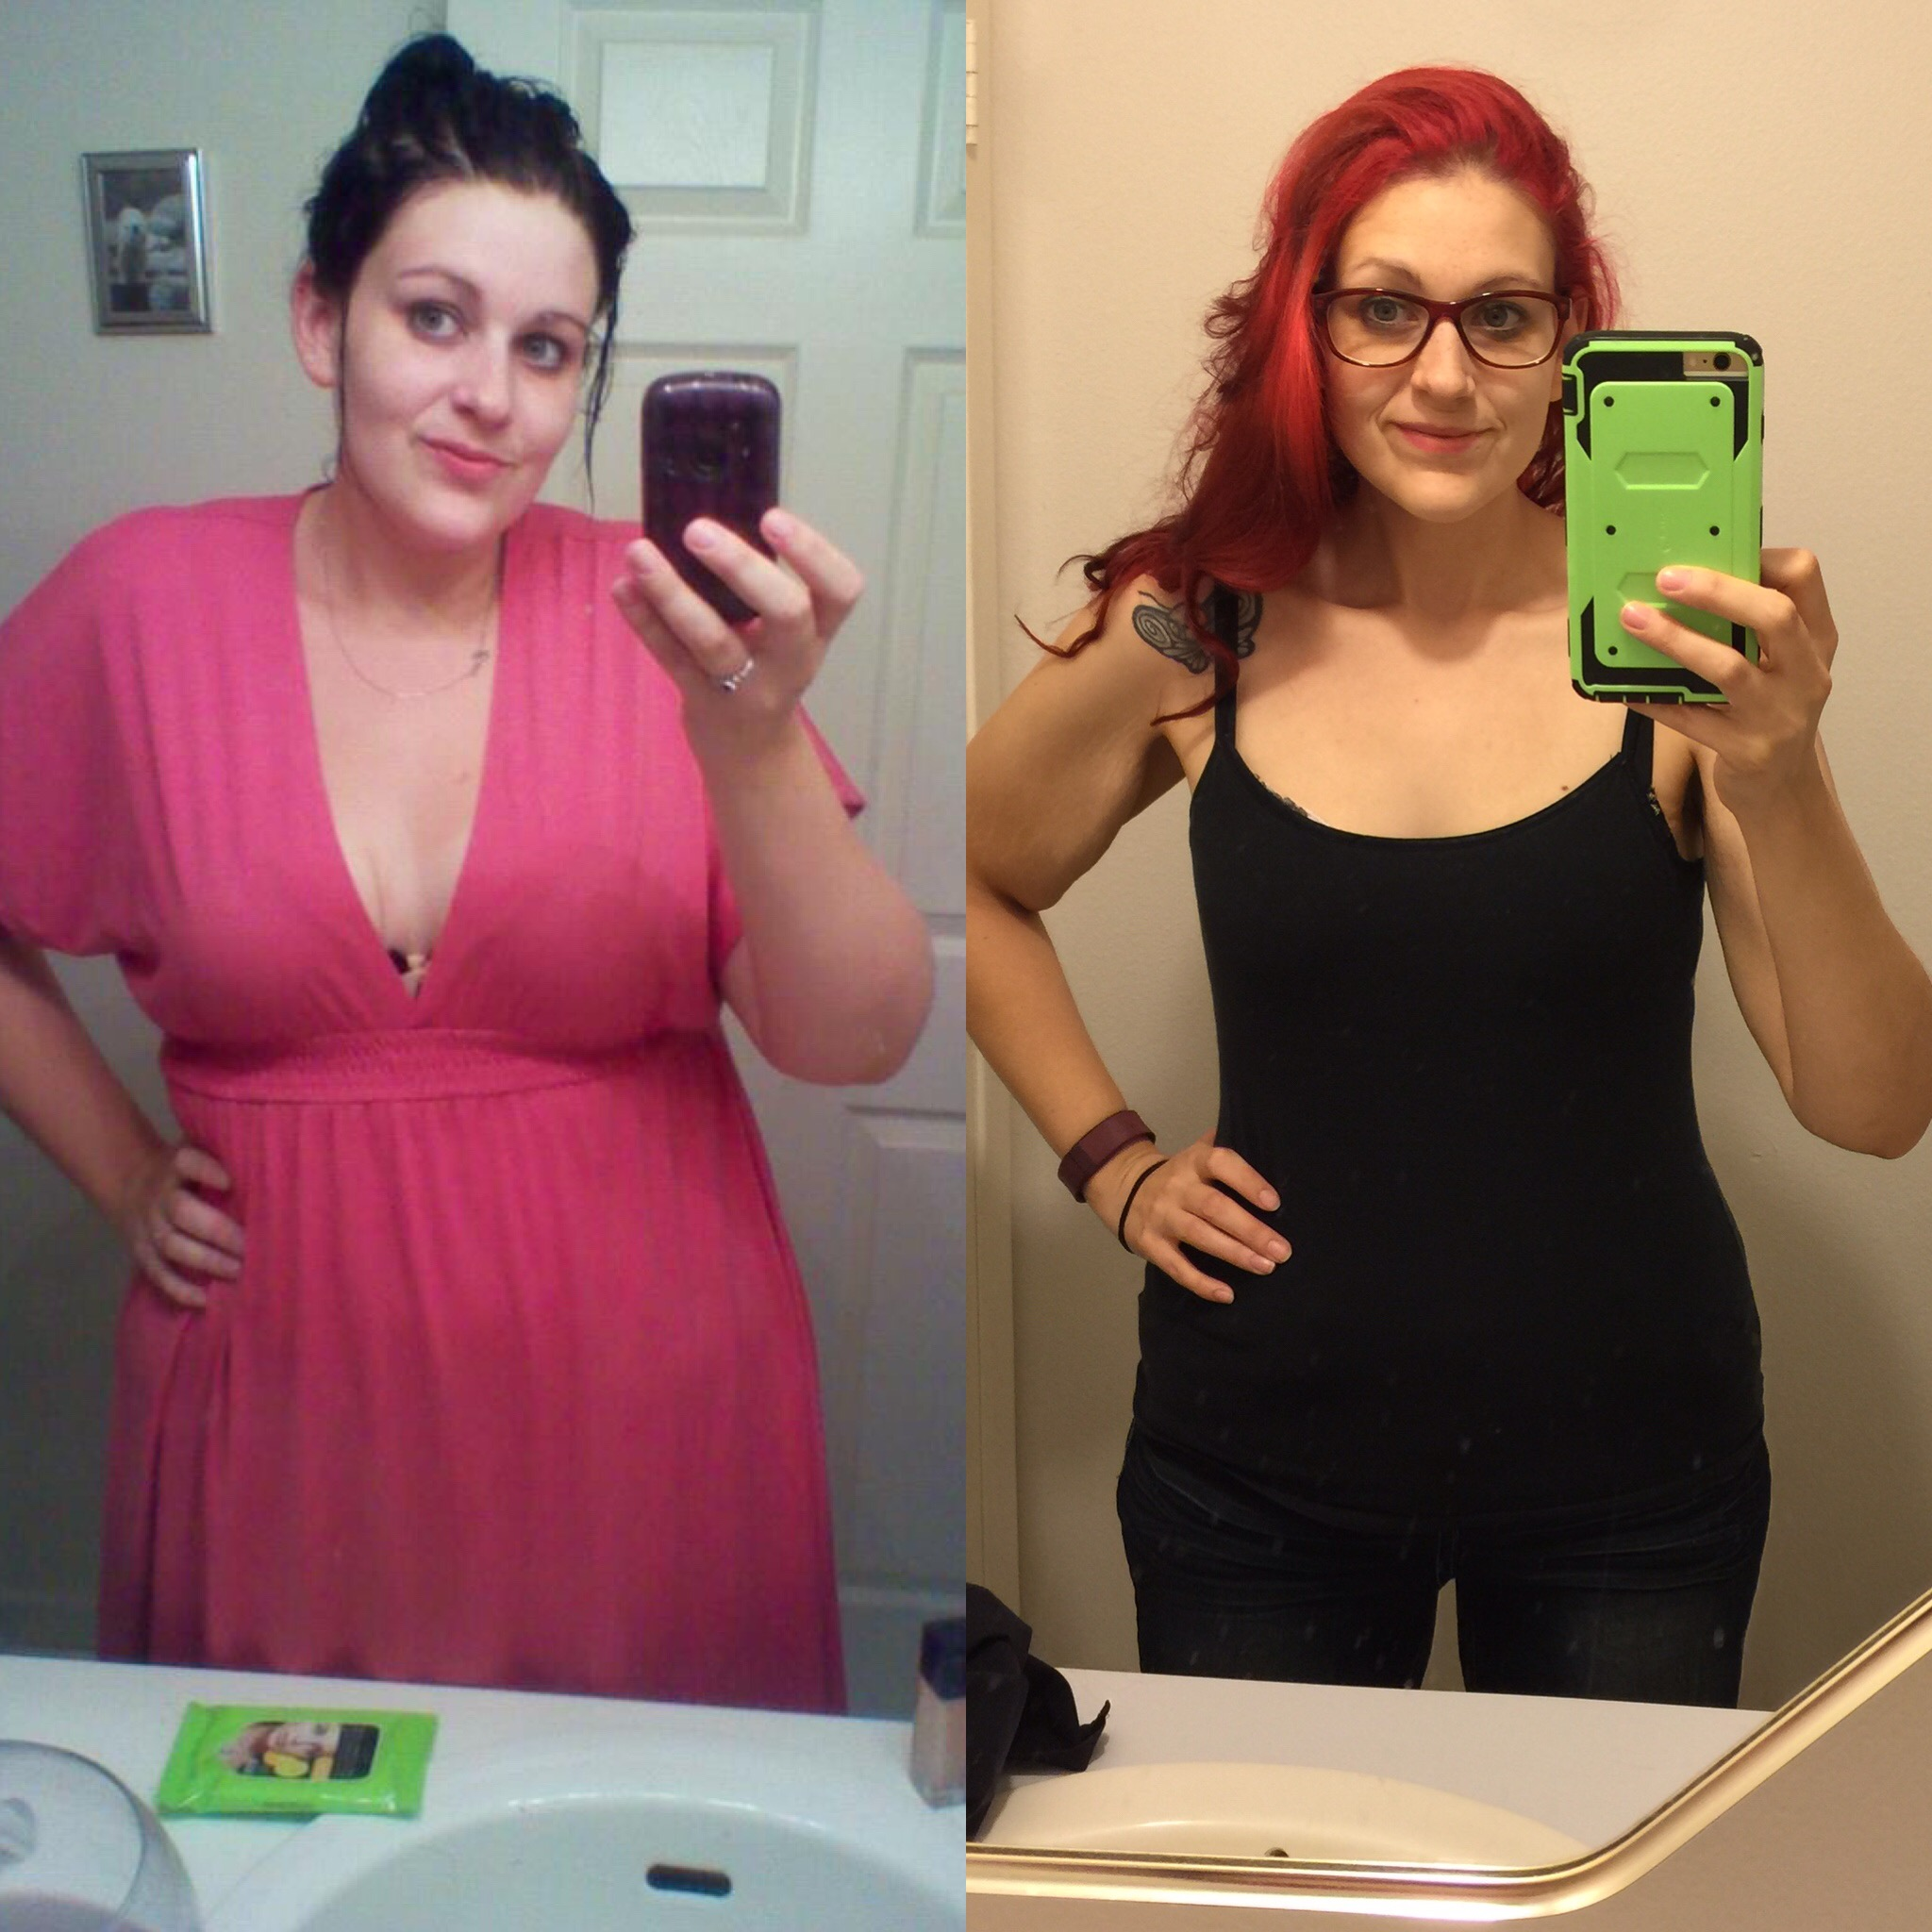 Sarah lost 128 pounds! See my before and after weight loss pictures, and read amazing weight loss success stories from real women and their best weight loss diet plans and programs. Motivation to lose weight with walking and inspiration from before and after weightloss pics and photos.